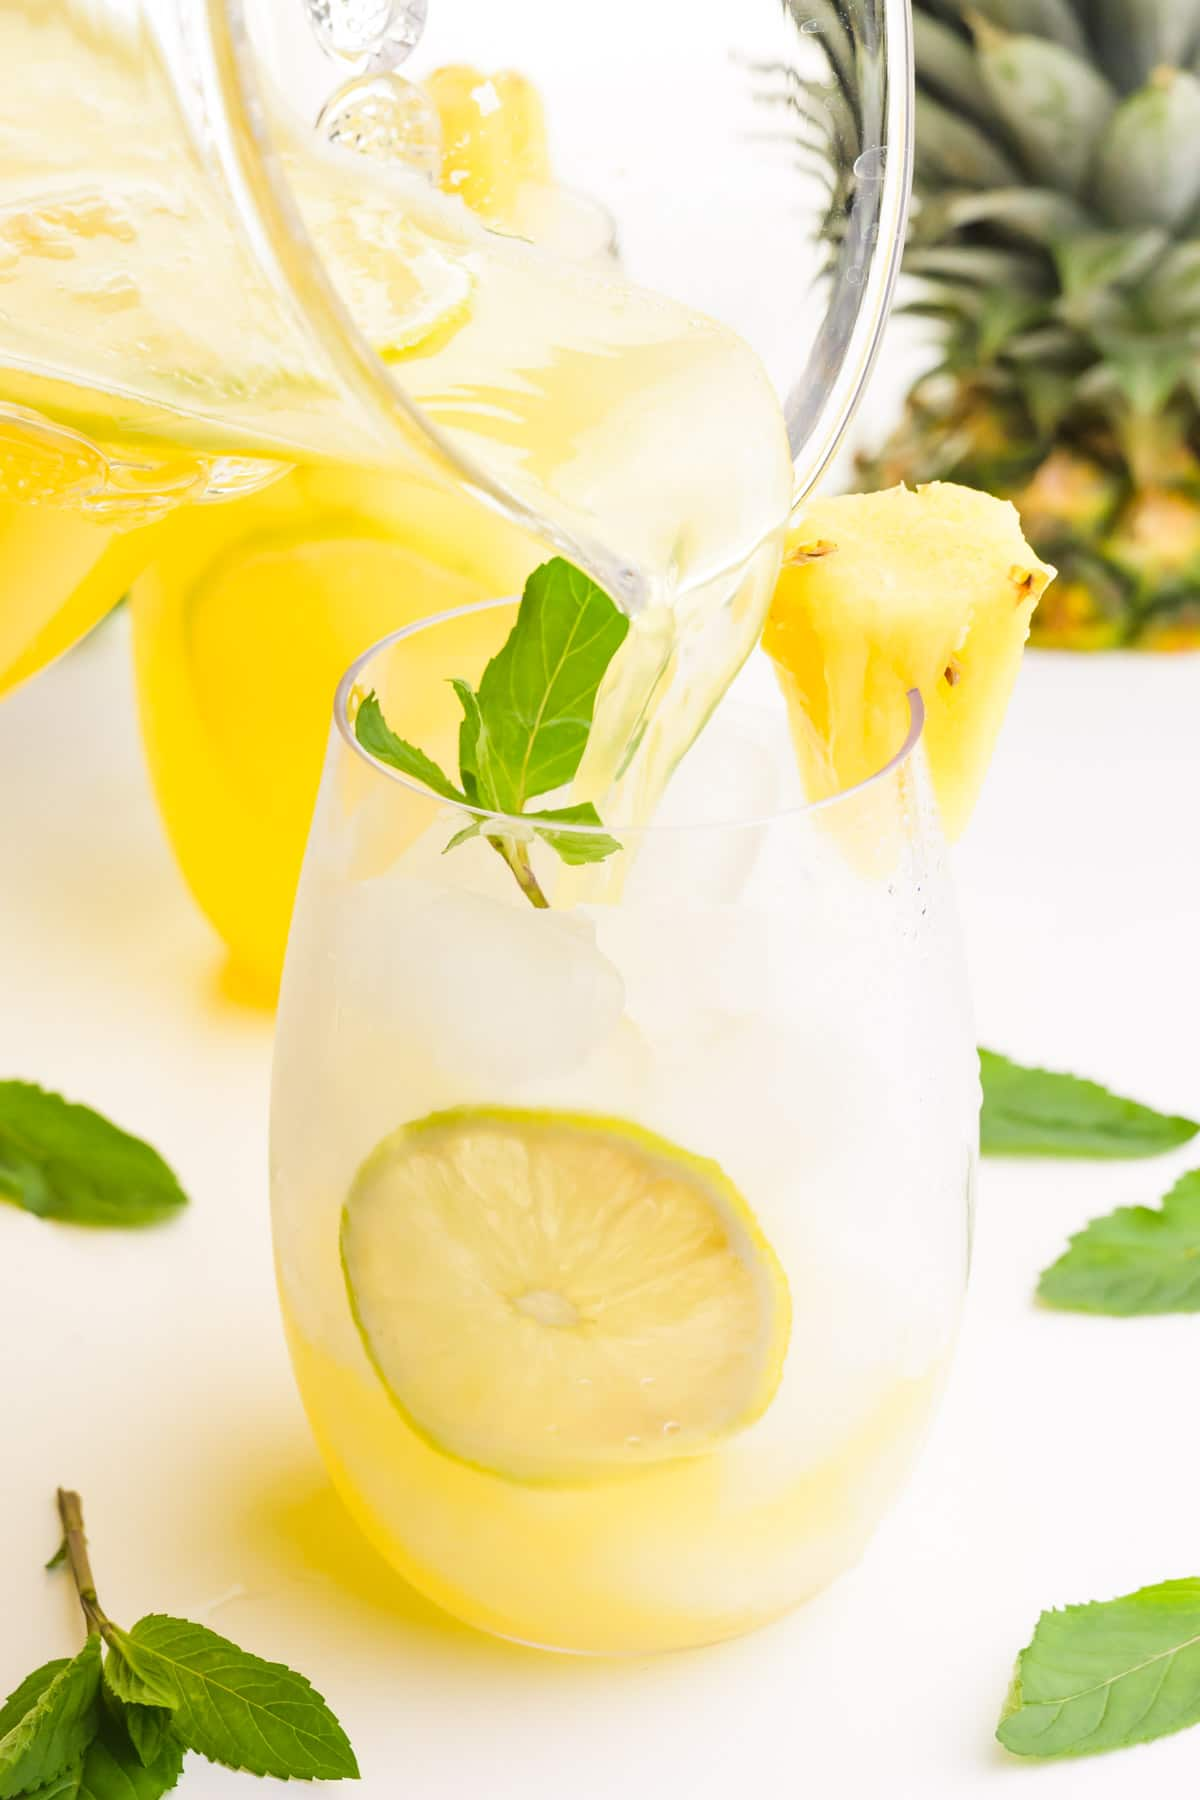 A pitcher is pouring pineapple beverage into a glass of ice with lime slices. There is a mint sprig and pineapple chunk on the glass. There are mint sprigs around the glass and the top of a fresh pineapple in the background.